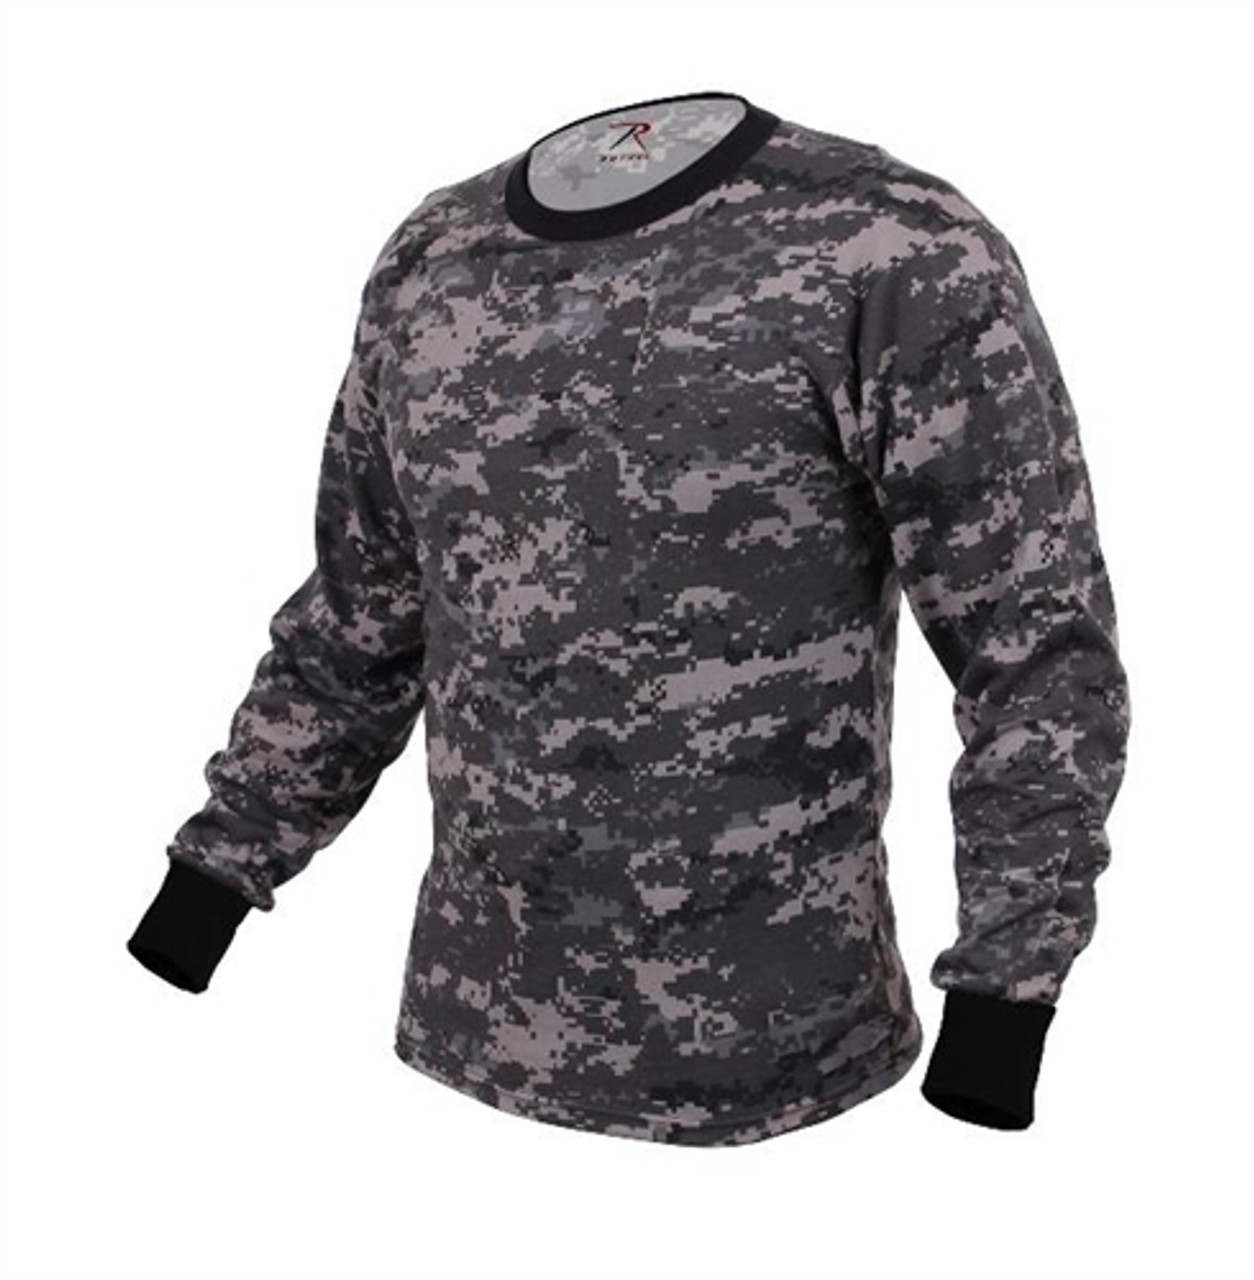 Long Sleeve Subdued Urban Digital Camo T-Shirt from Hessen Tactical